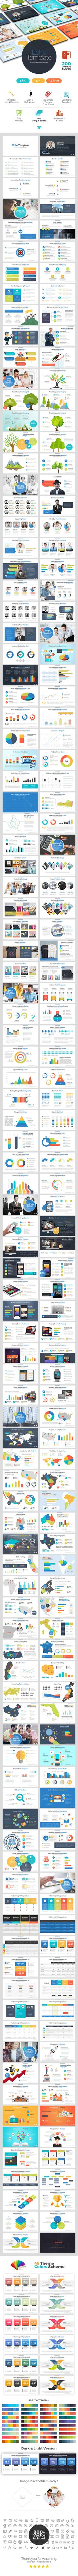 Echo PowerPoint Template. Download here: http://graphicriver.net/item/echo-powerpoint-template/15475463?ref=ksioks